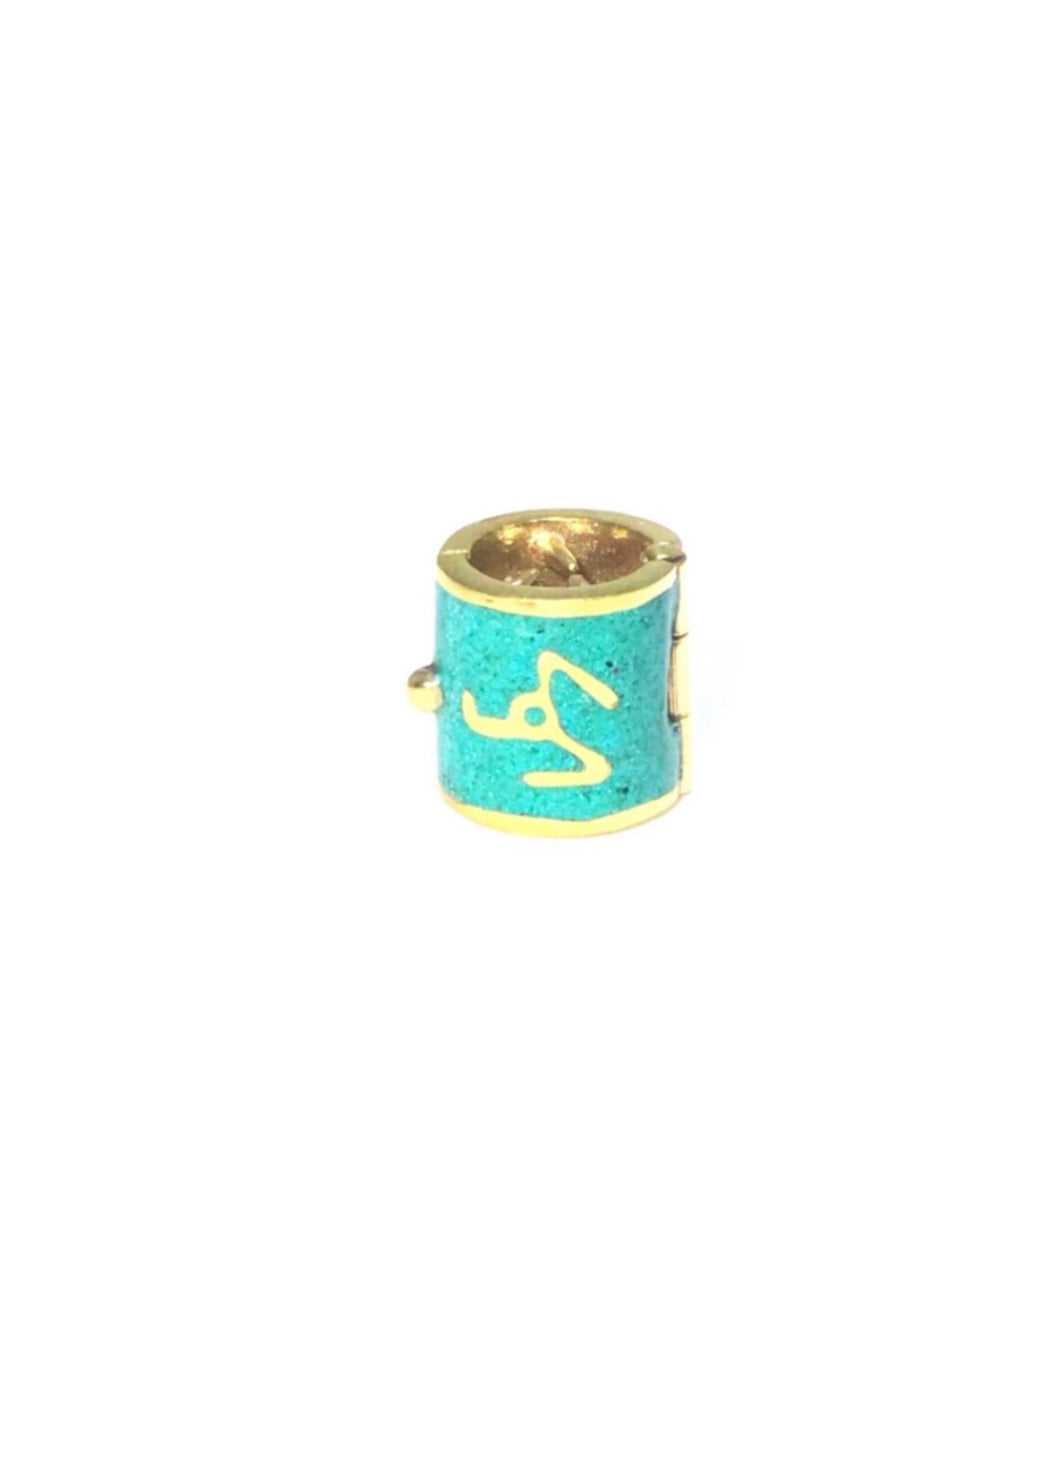 Transform Star Symbol - Gold Plated & Tibetan Turquoise